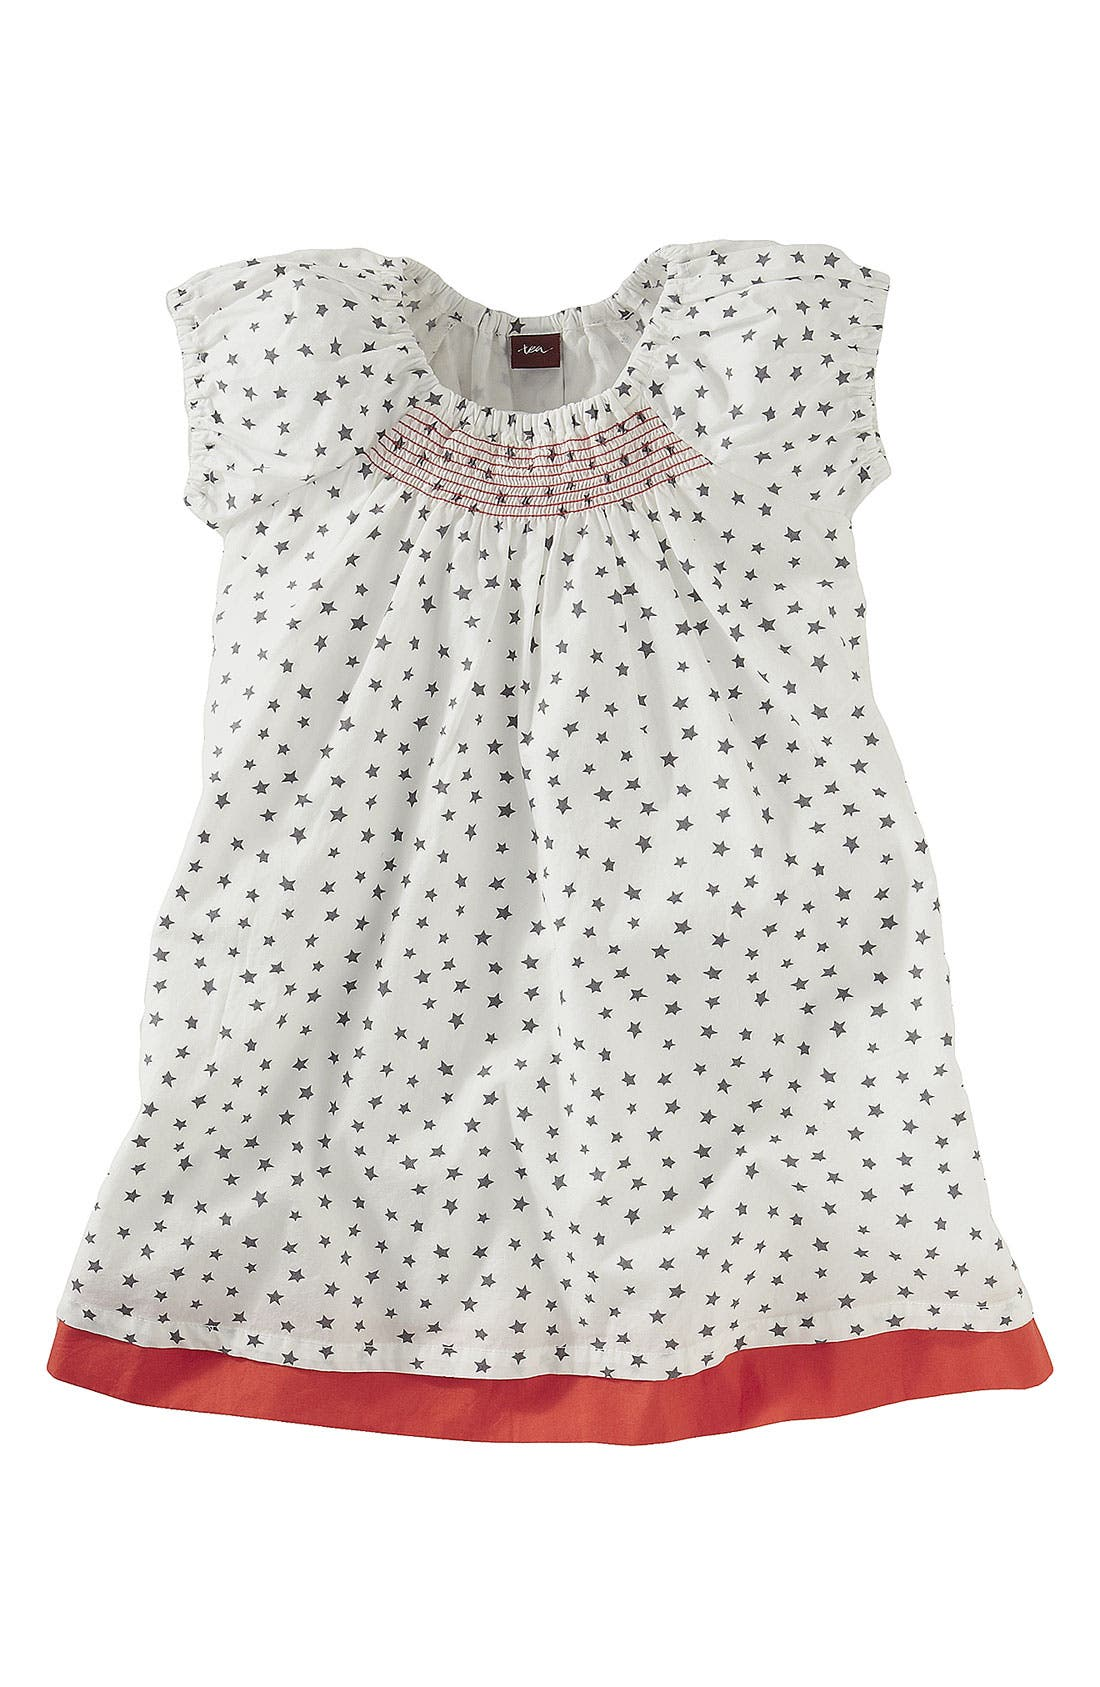 Main Image - Tea Collection Smocked Dress (Infant)